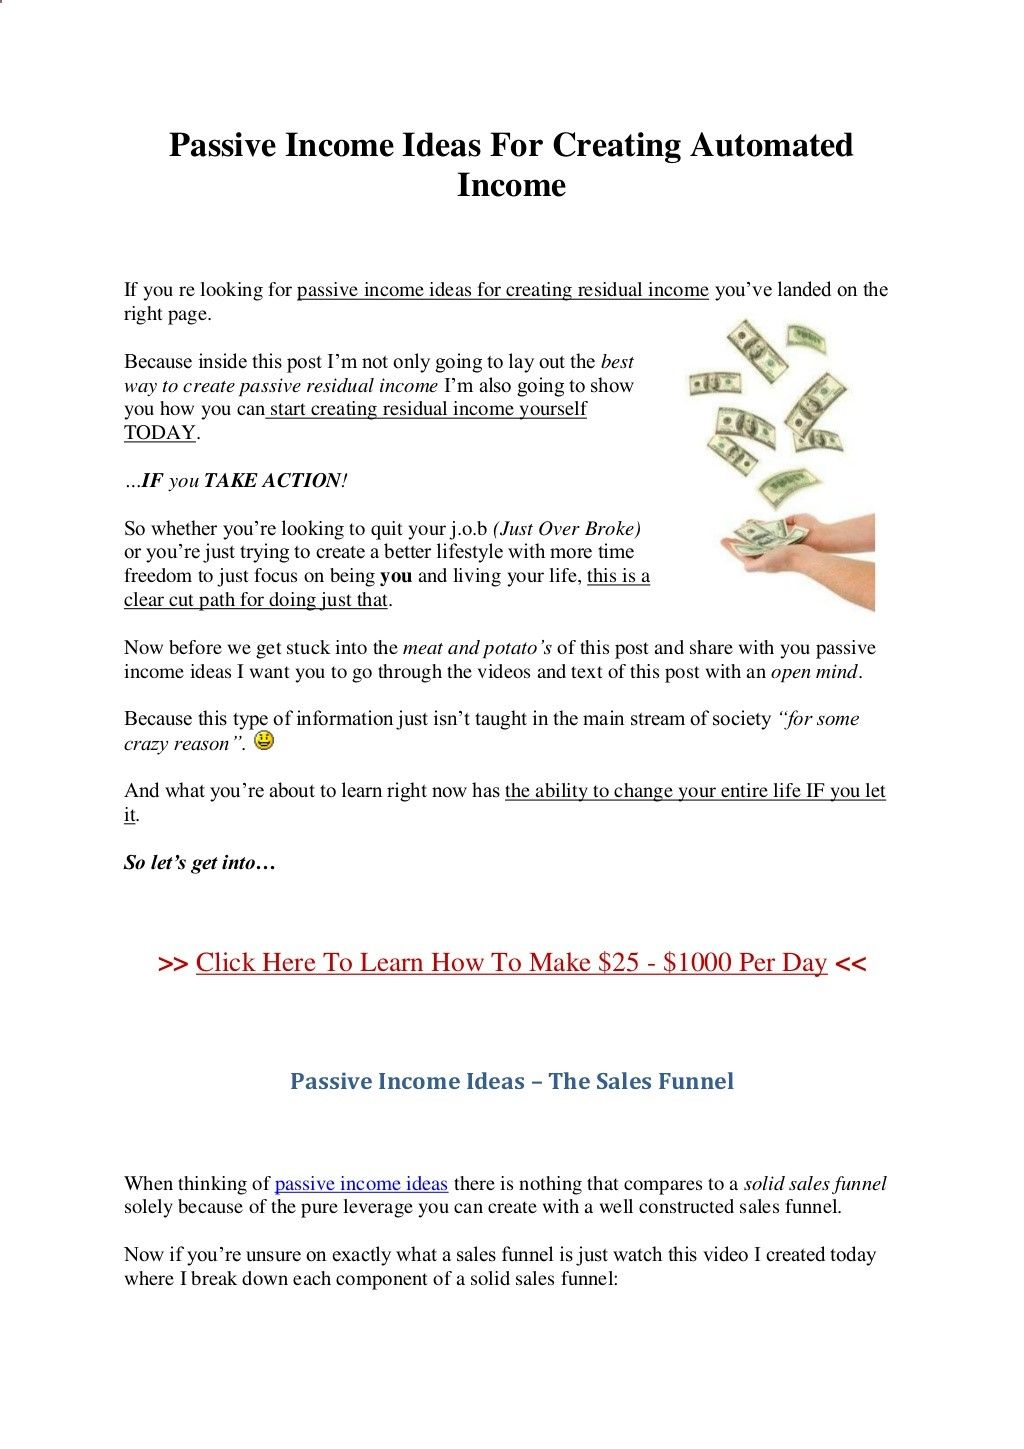 The Holy Grail of Passive Residual Income Ideas For Creating Automated Income.